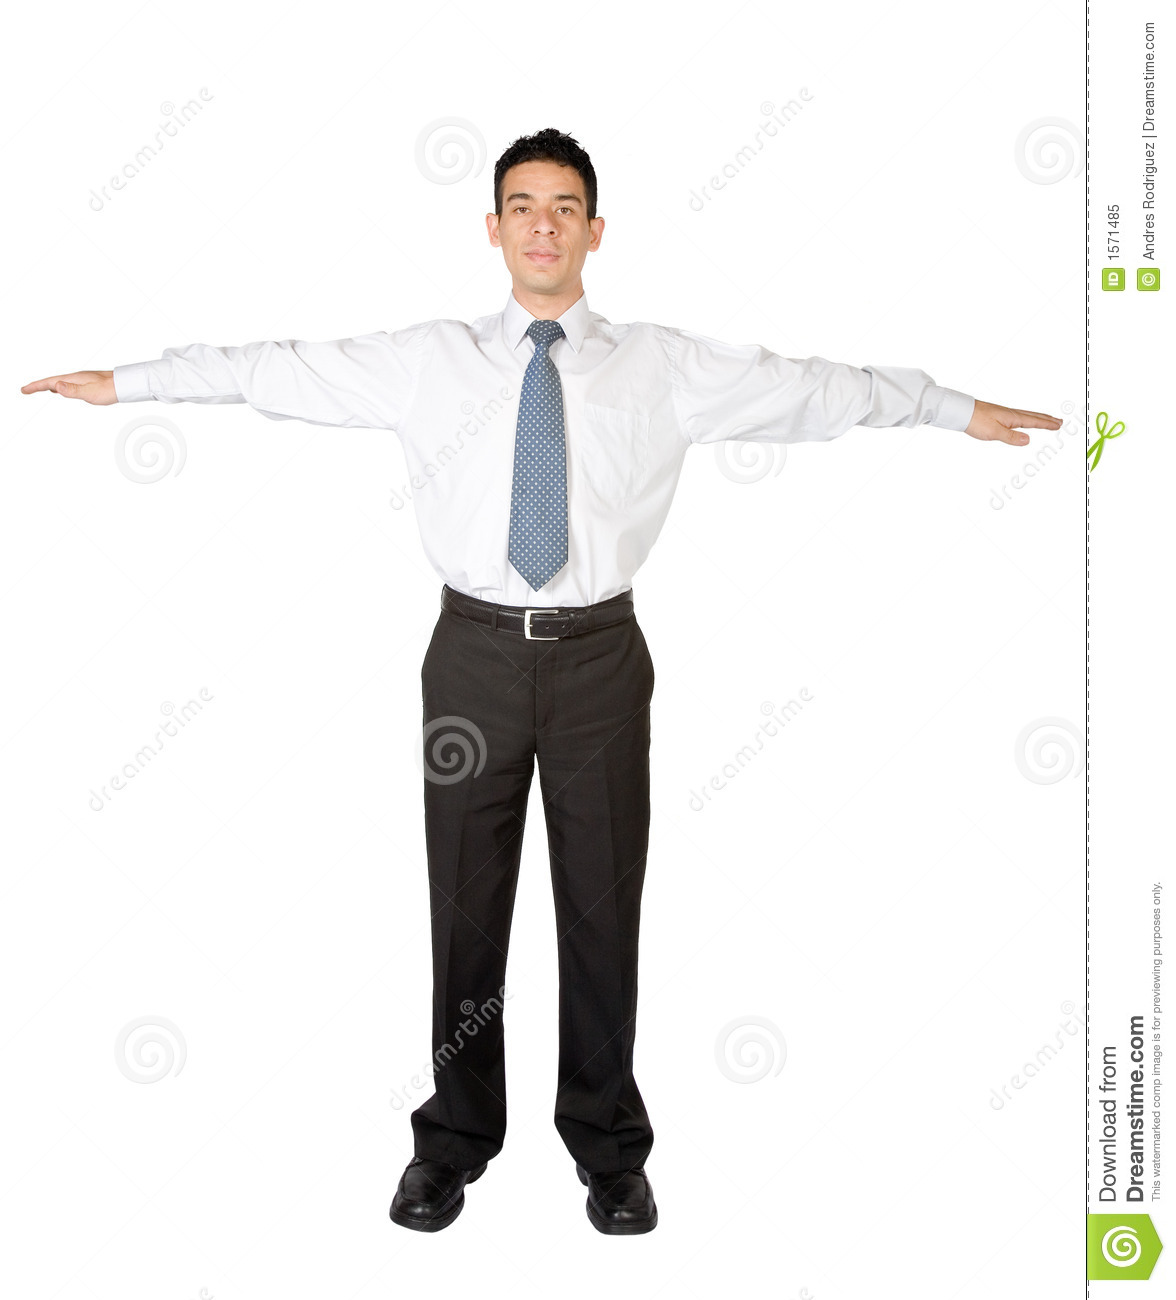 business-man-standing-arms-open-1571485.